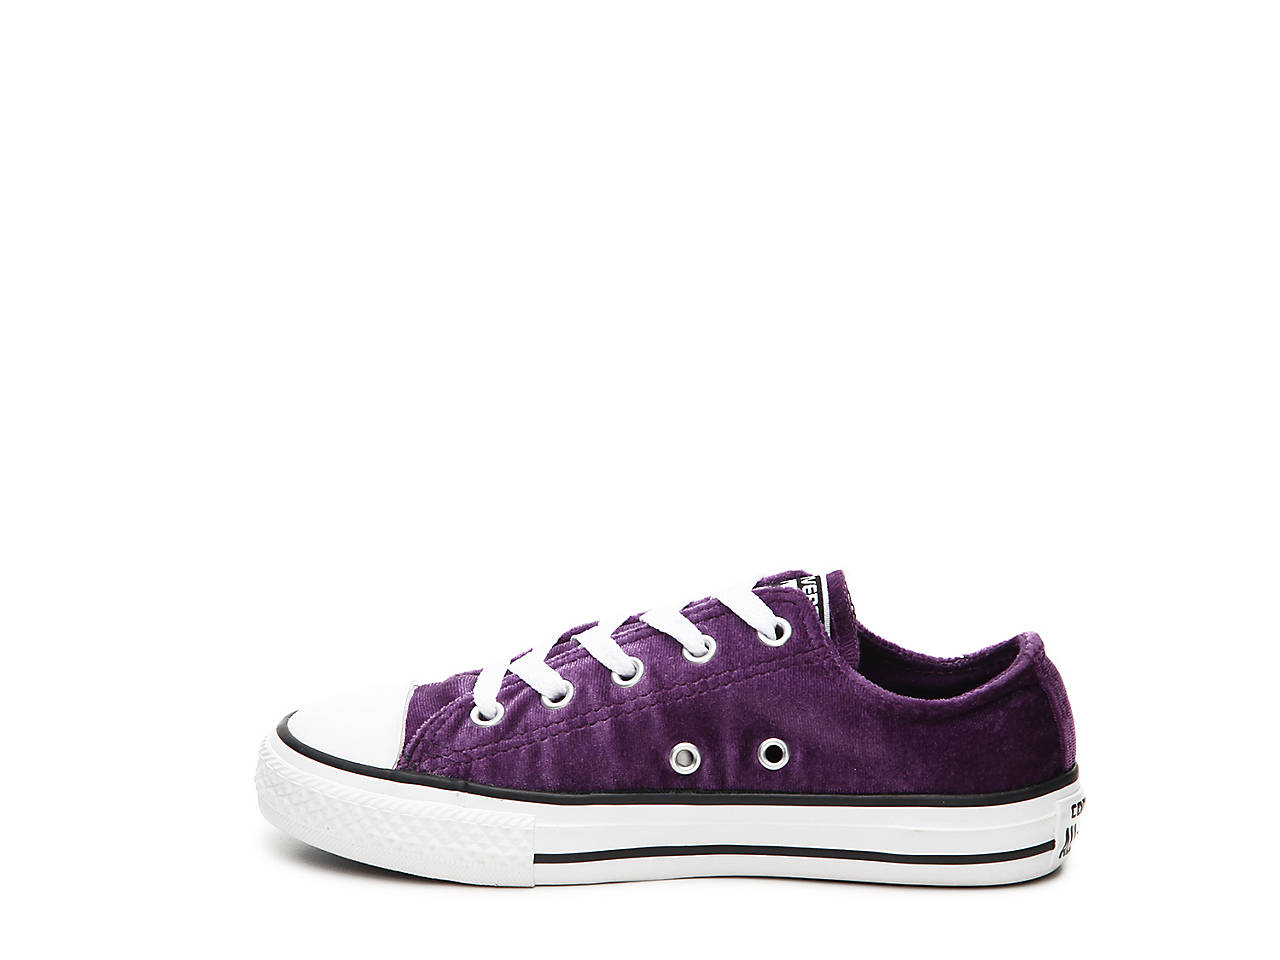 6f573dcf50fa Converse Chuck Taylor All Star Velvet Toddler   Youth Sneaker Kids ...